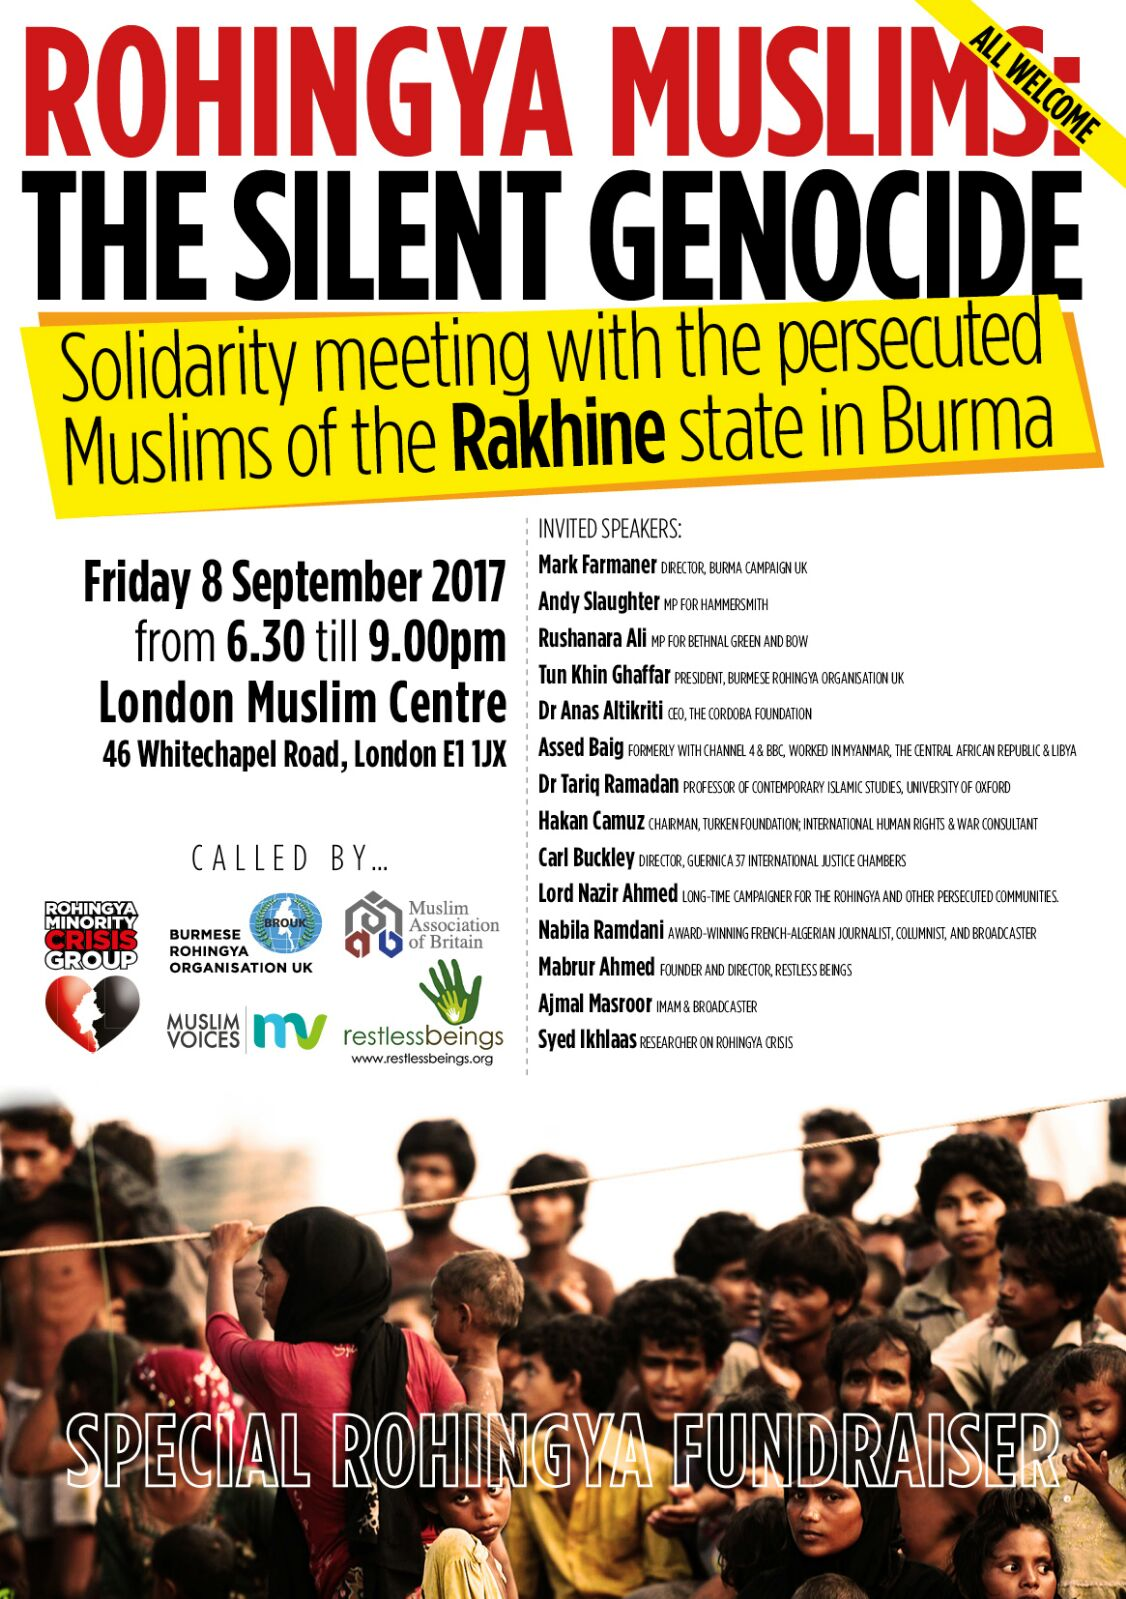 Rohingya Muslims: The Silent Genocide